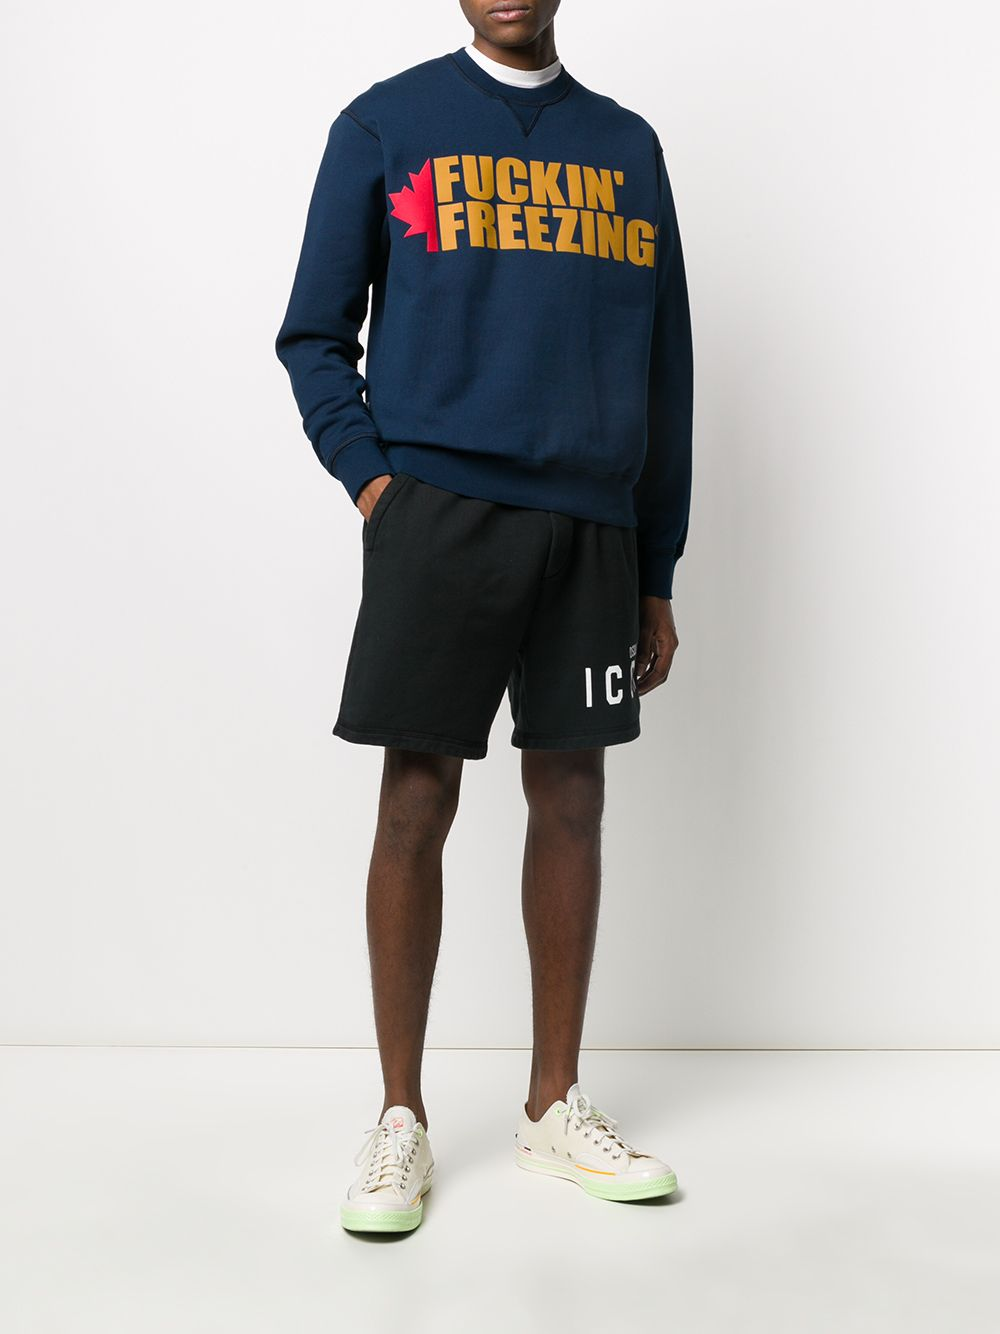 DSQUARED2 F*ckin' Freezing Sweatshirt Navy/Gold